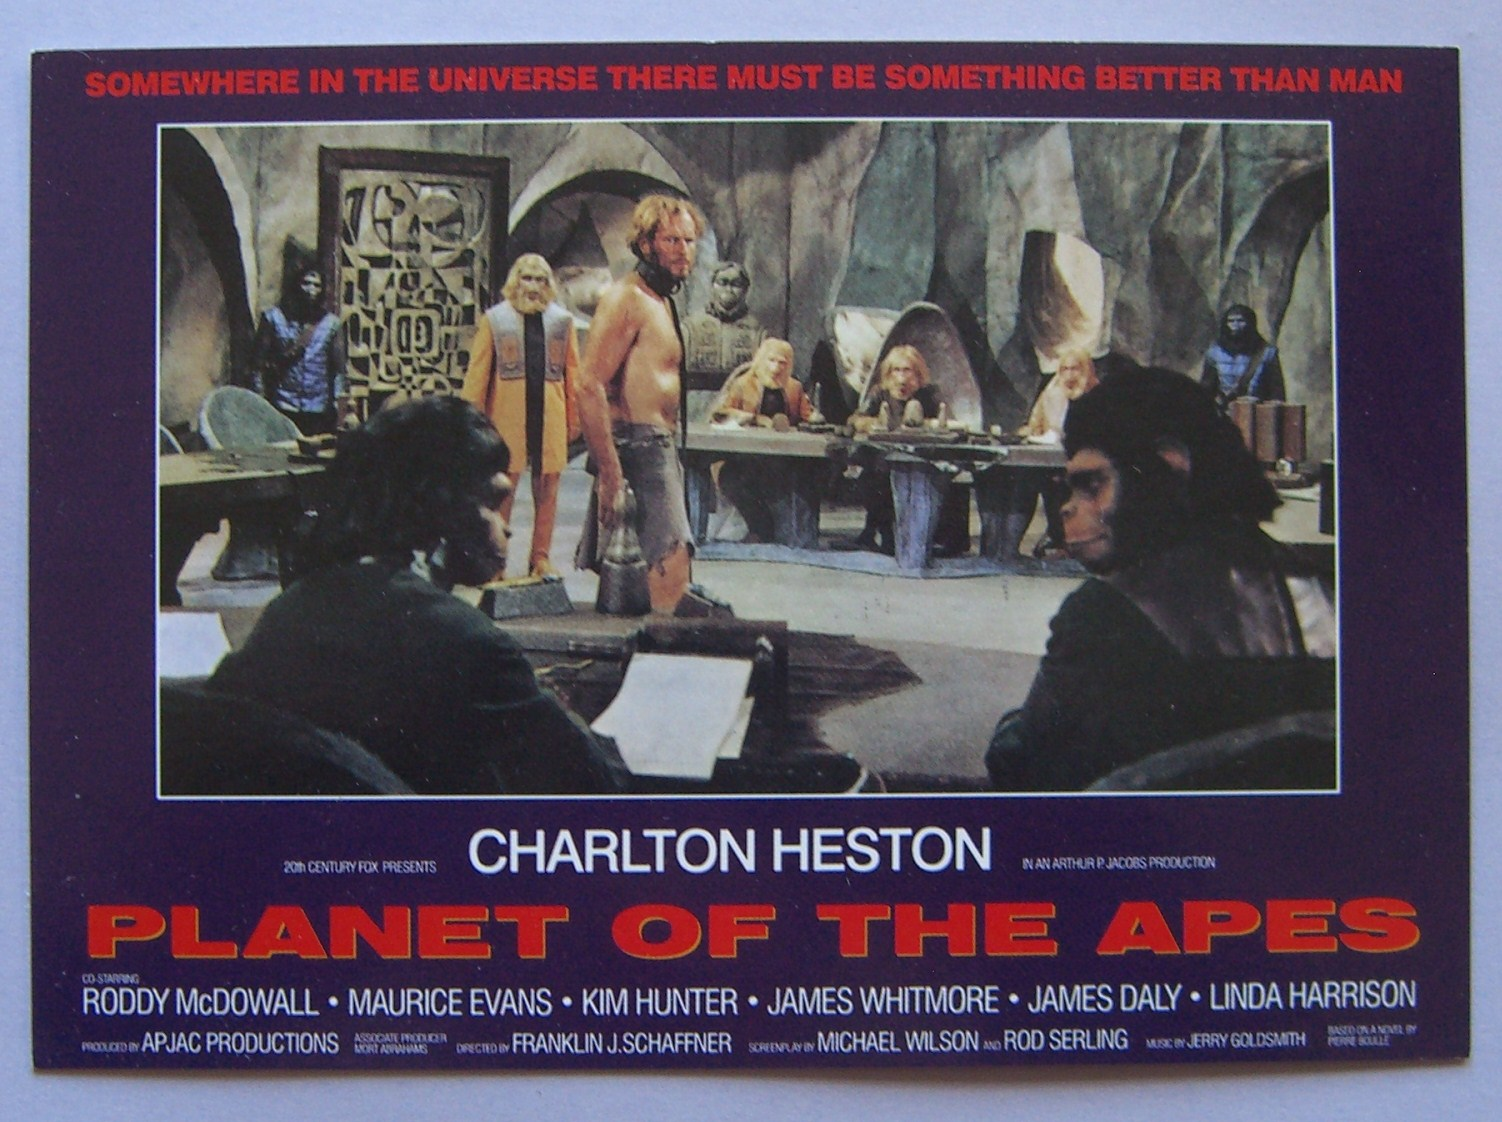 a comparison of the planet of the apes by jerry goldsmith and the planet of the apes by danny elfman Planet of the apes expanded original motion picture soundtrack - danny elfman your browser does not support this audio disc 1 the film score 1 jerry goldsmith memories of me original motion picture soundtrack.